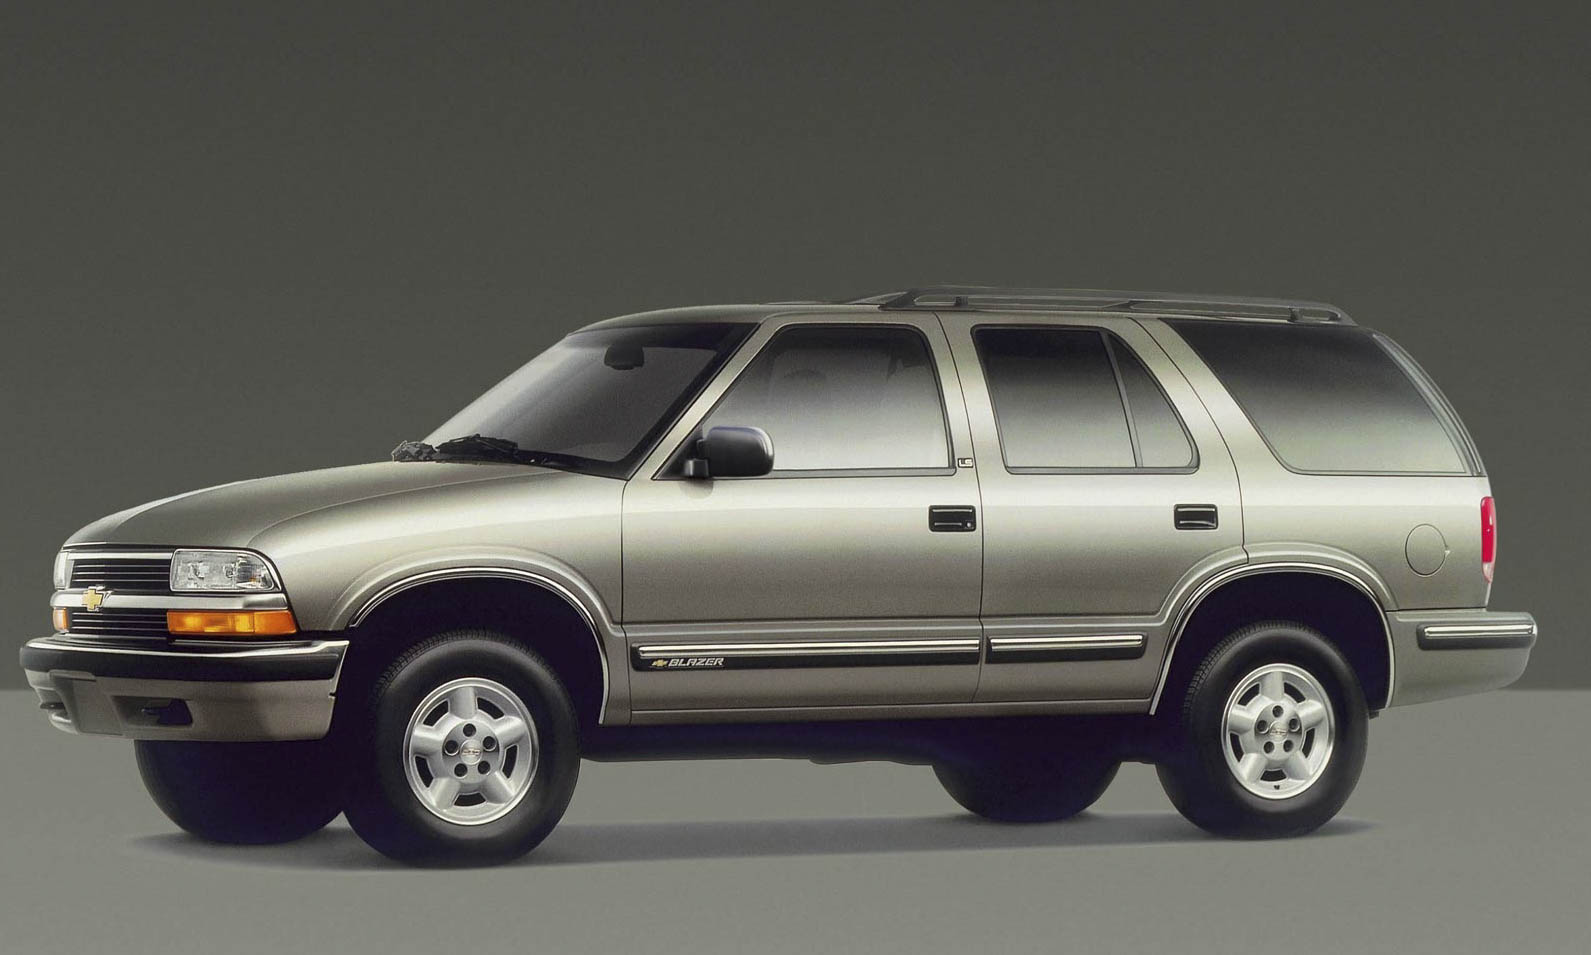 1999 Chevy Chevrolet Blazer in addition 2016 Chevrolet Silverado Z71 ...